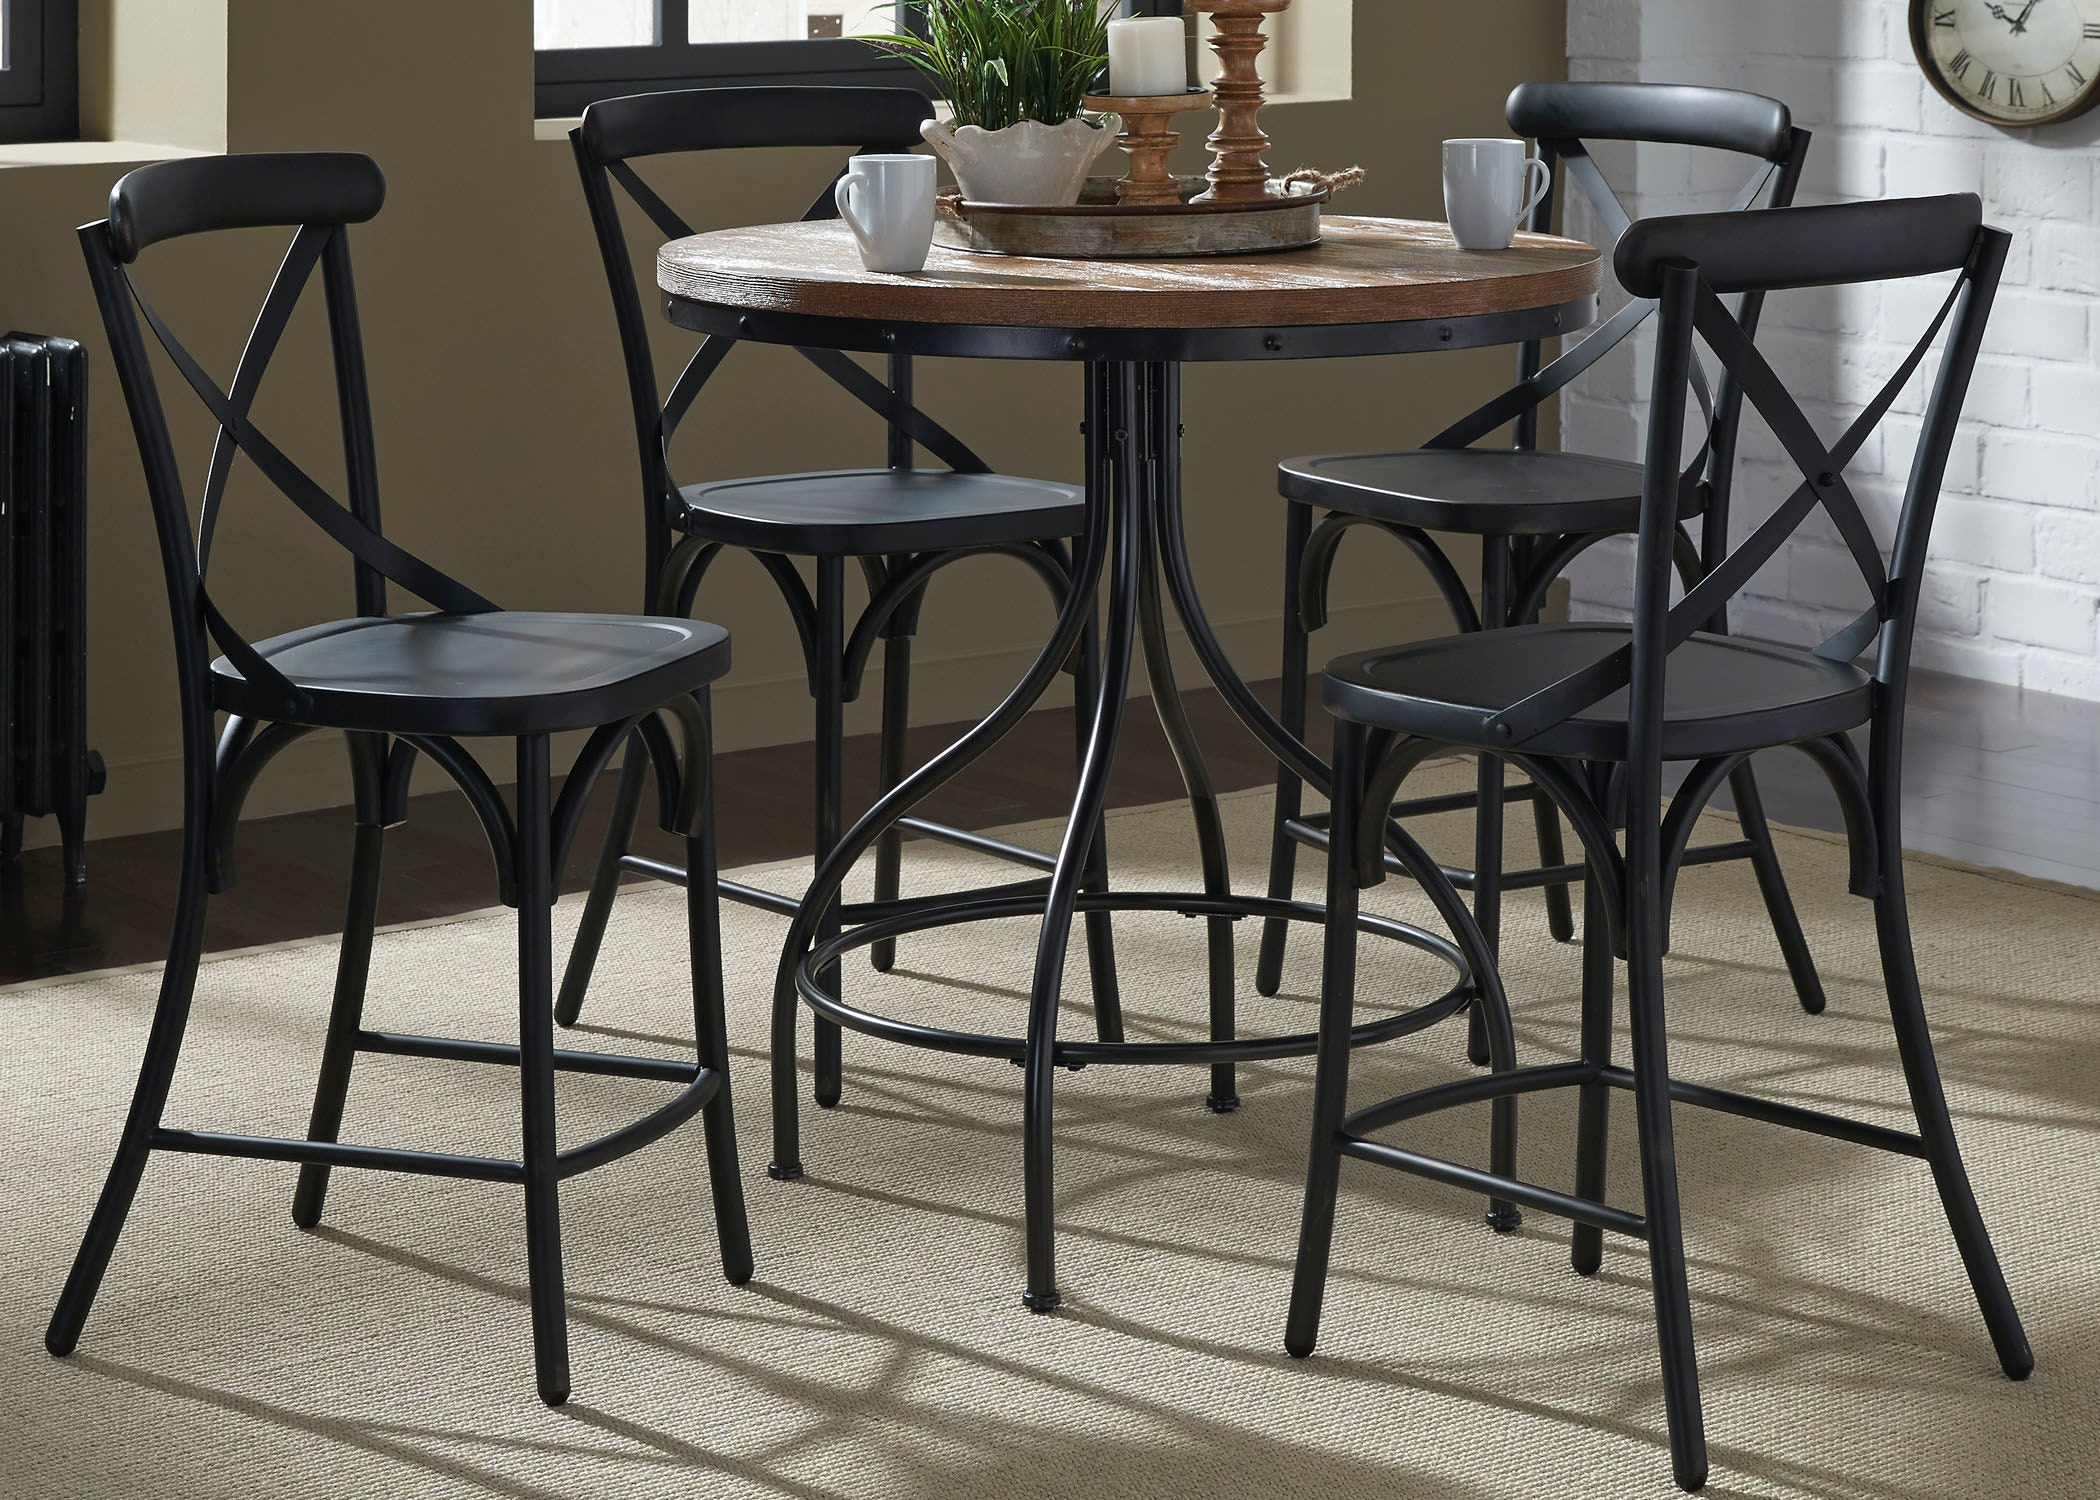 Liberty Furniture 5 Piece Gathering Table Set 179-CD-5GTS ... & Liberty Furniture Dining Room 5 Piece Gathering Table Set 179-CD ...